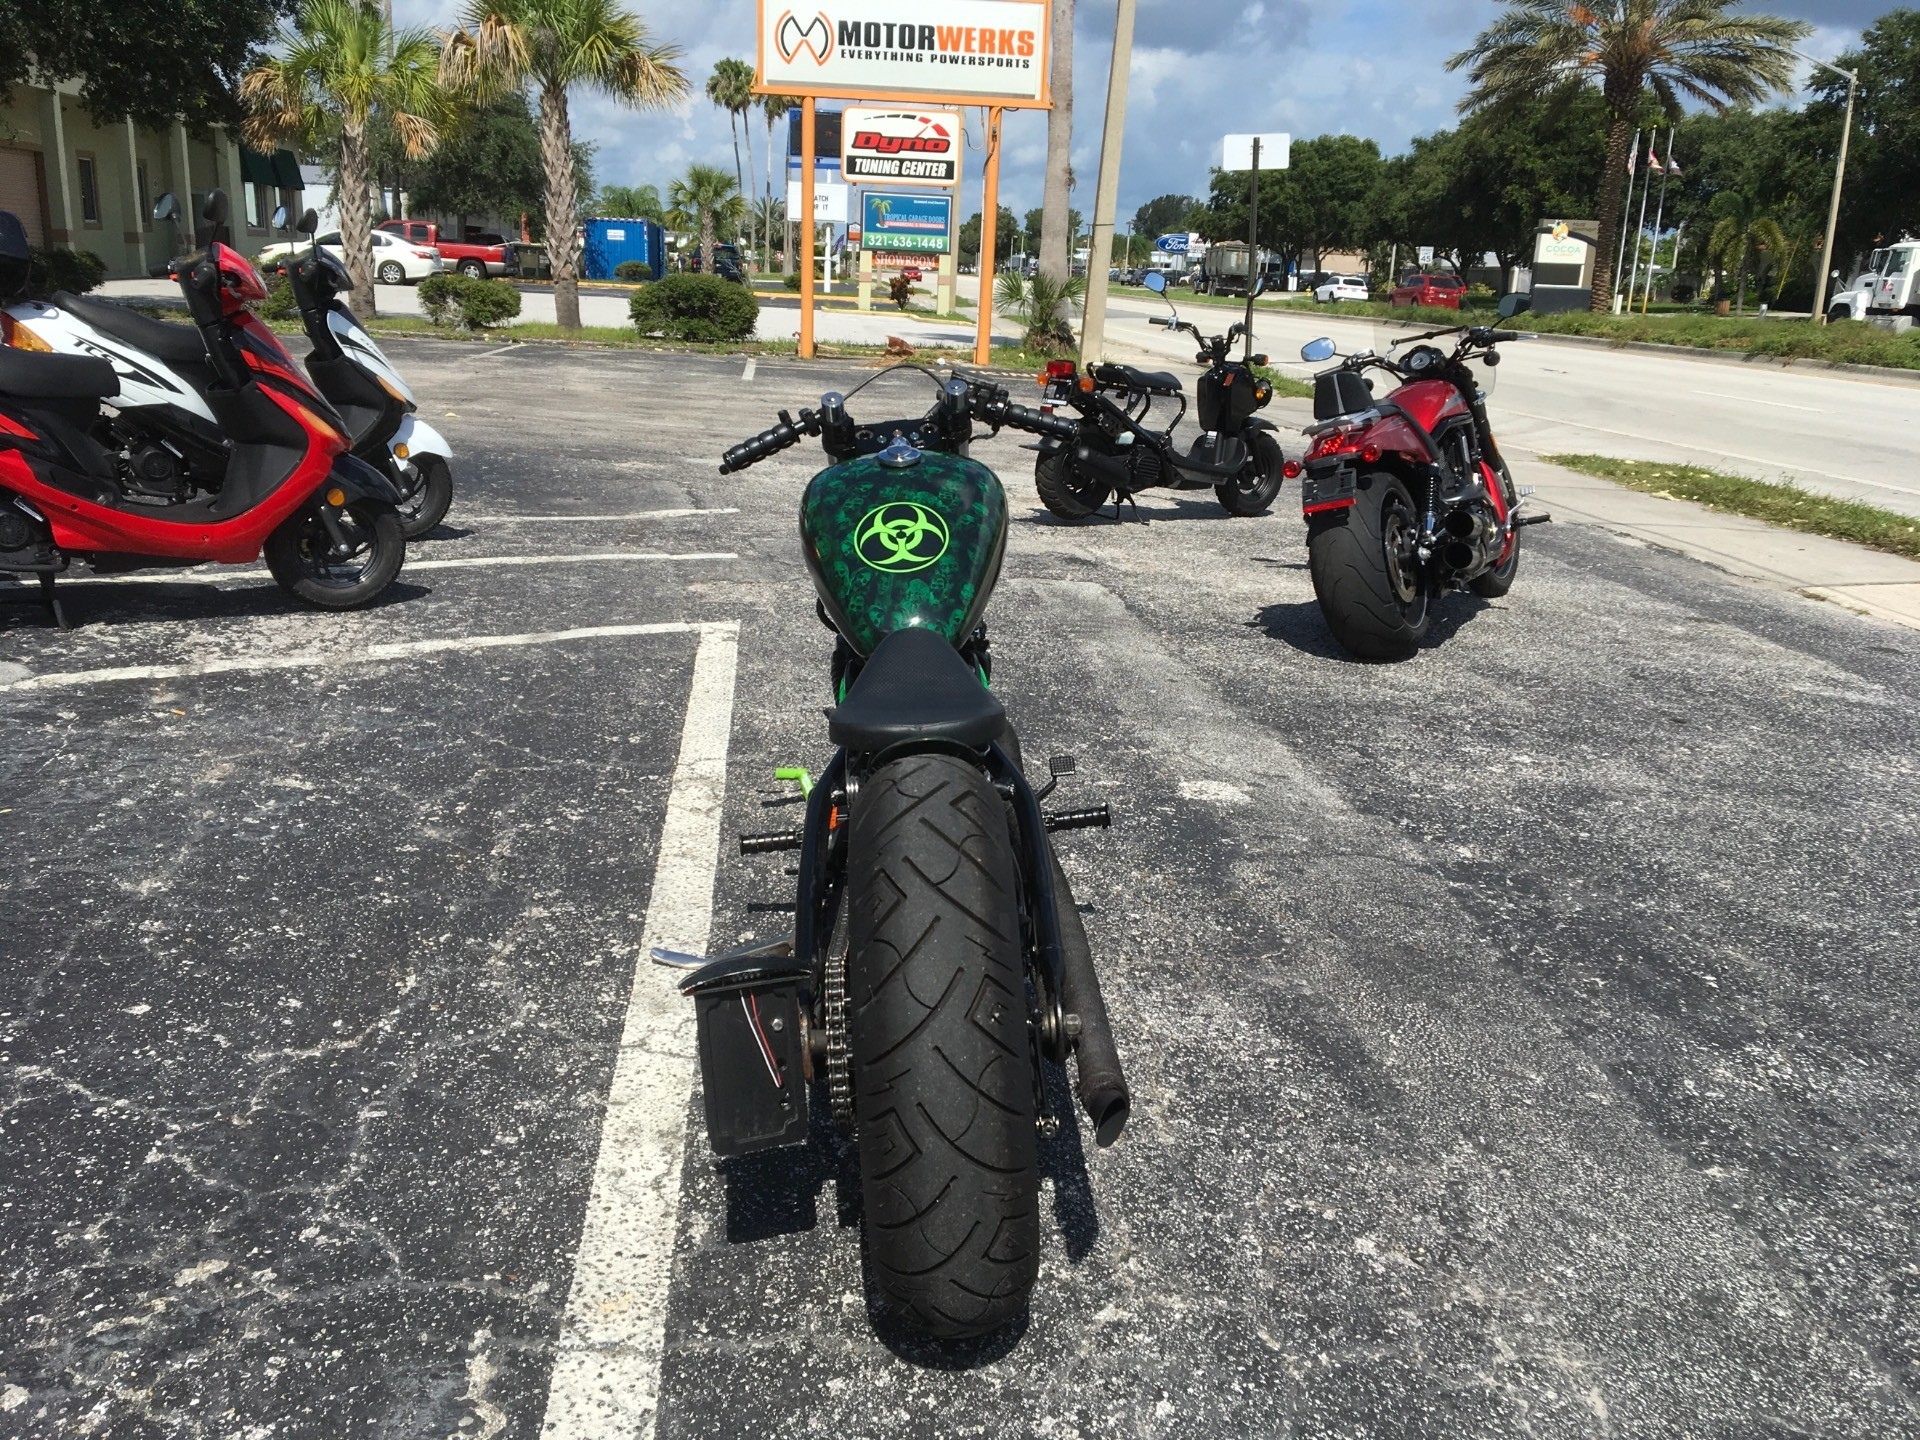 2002 Honda Shadow VLX in Cocoa, Florida